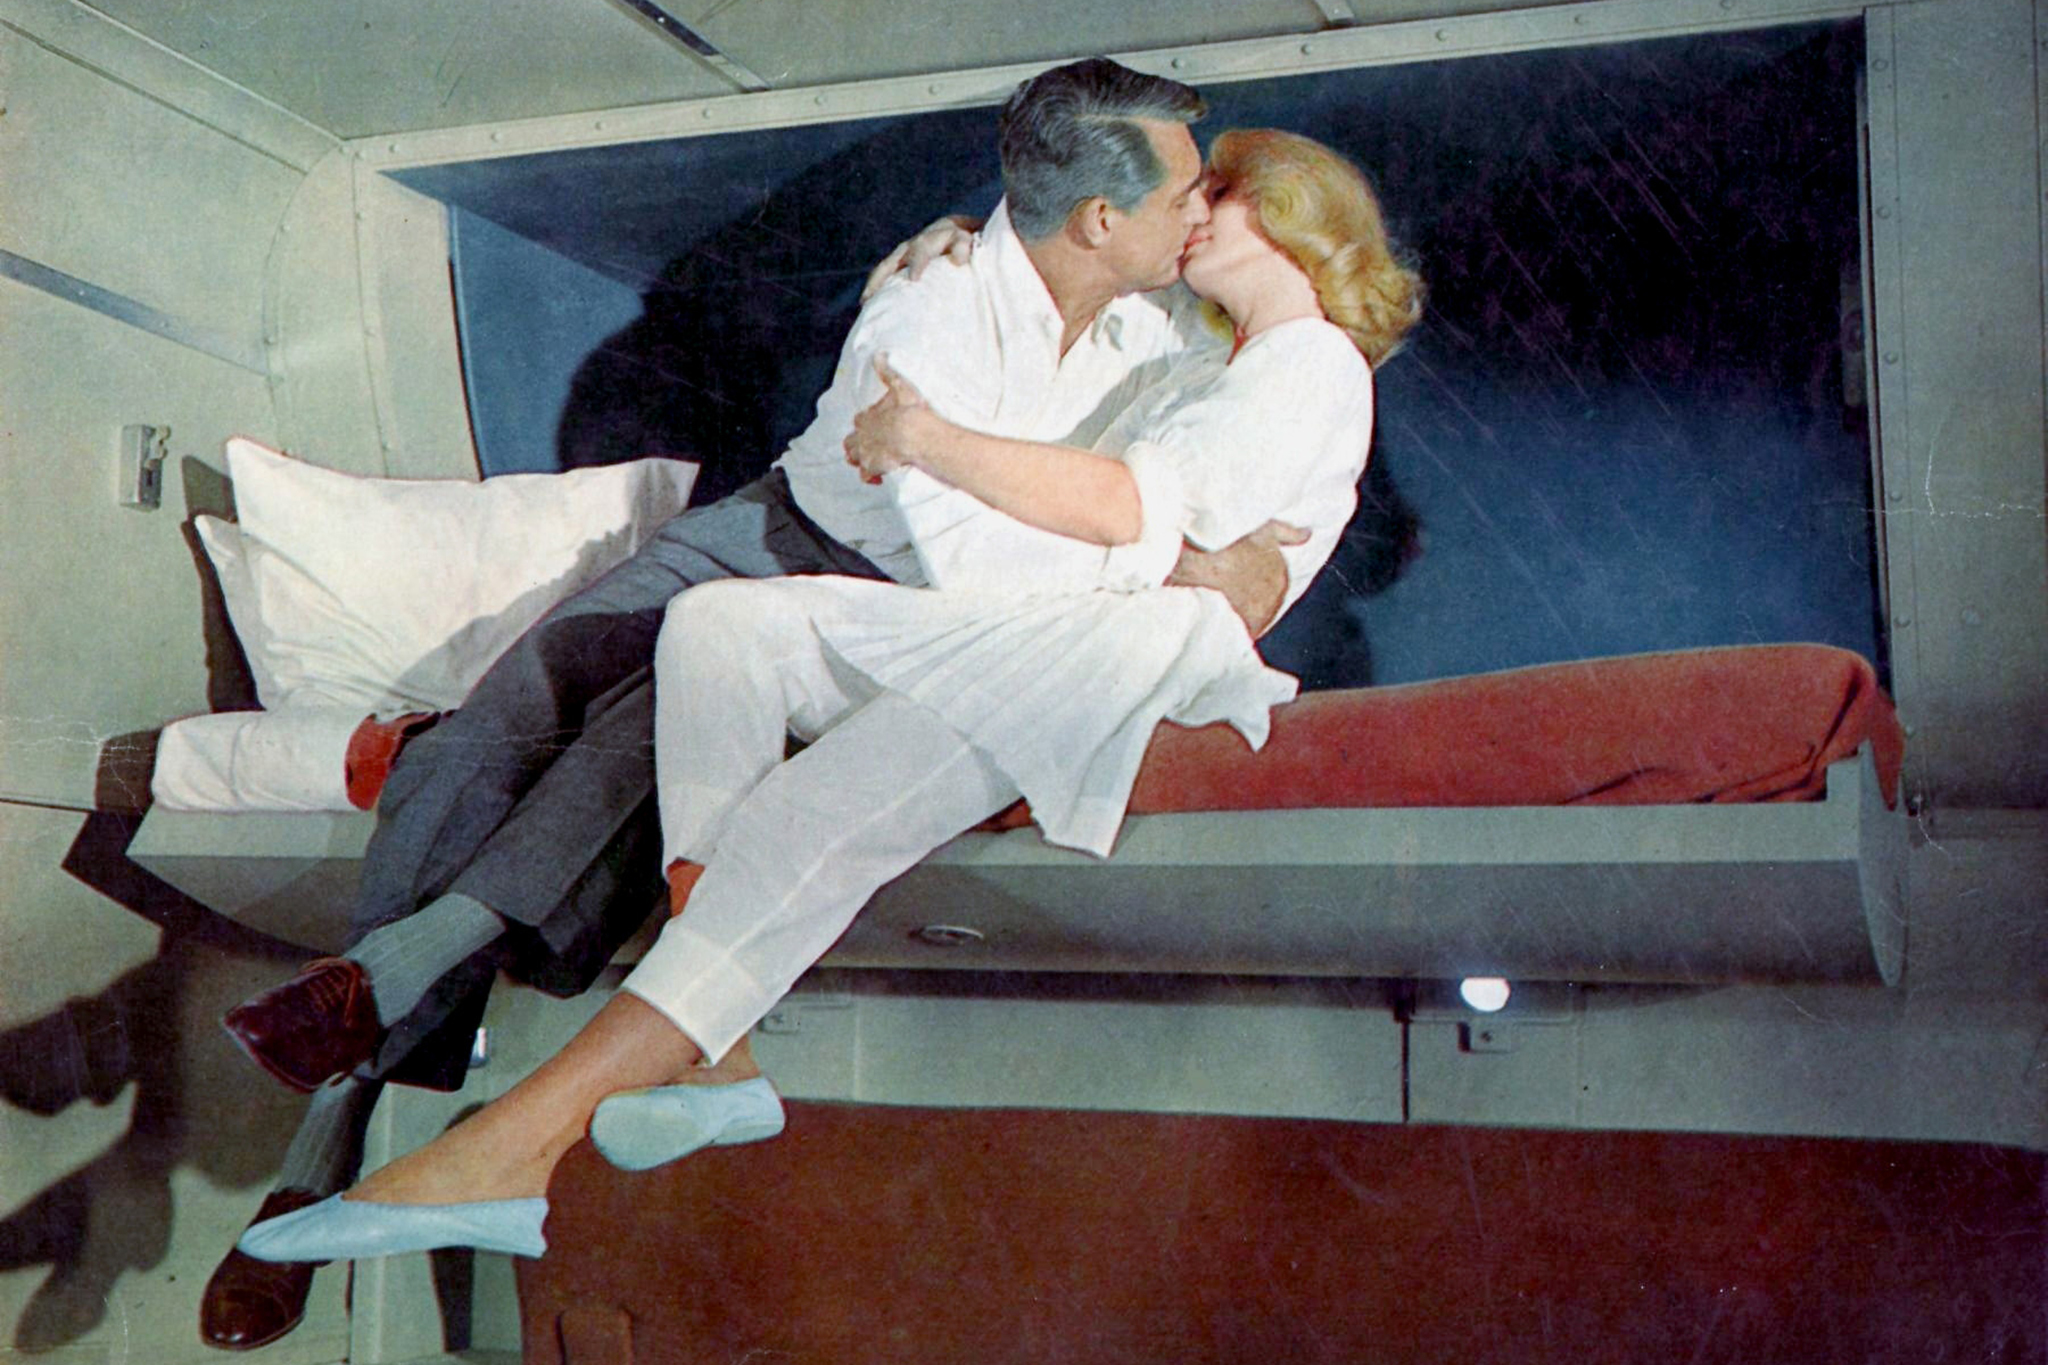 100 sex scenes, North by Northwest